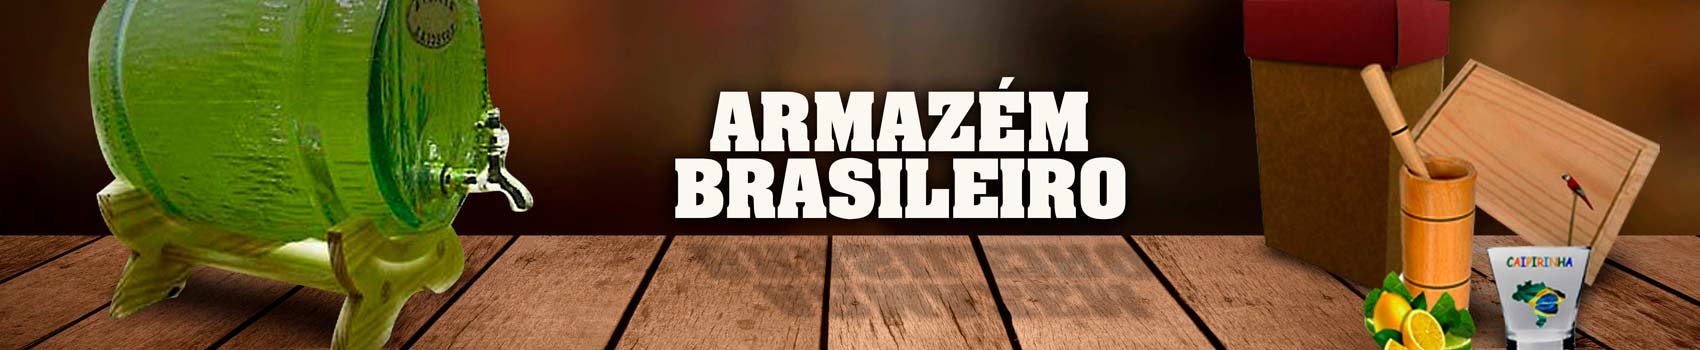 Armazém Brasileiro